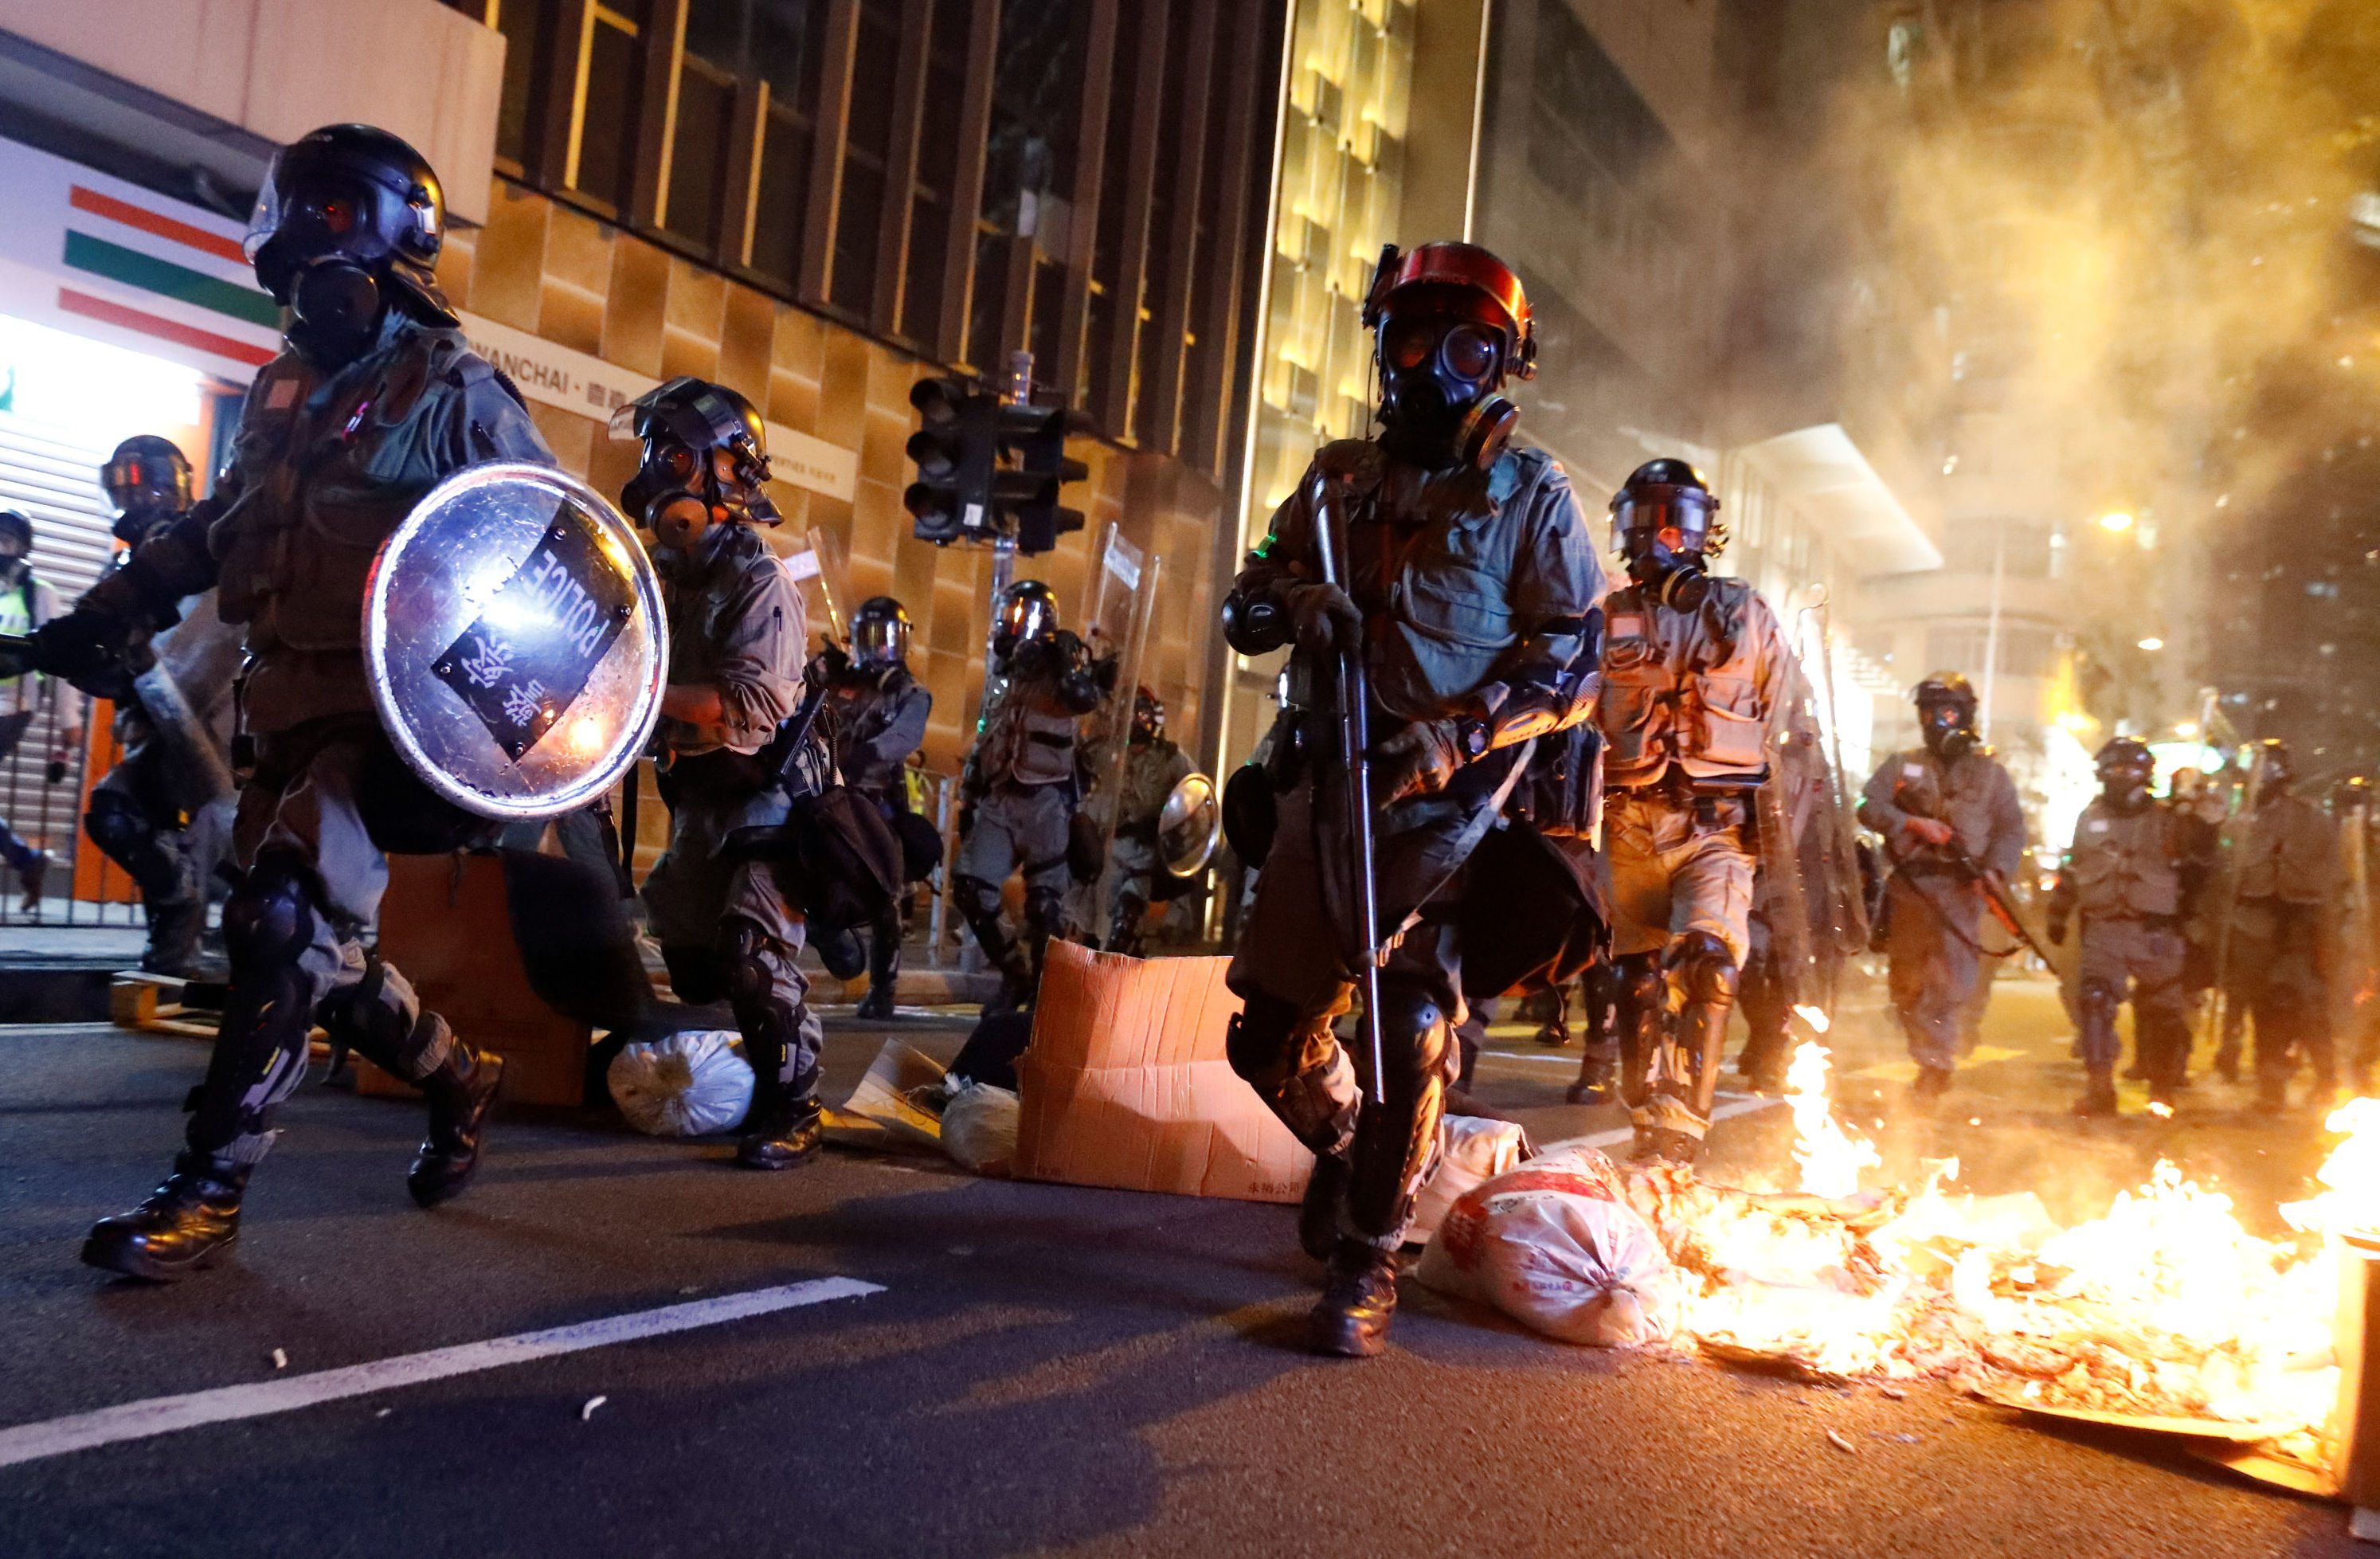 Police passes a burning barricade to break up thousands of anti-government protesters during a march billed as a global emergency call for autonomy, in Hong Kong, China November 2, 2019